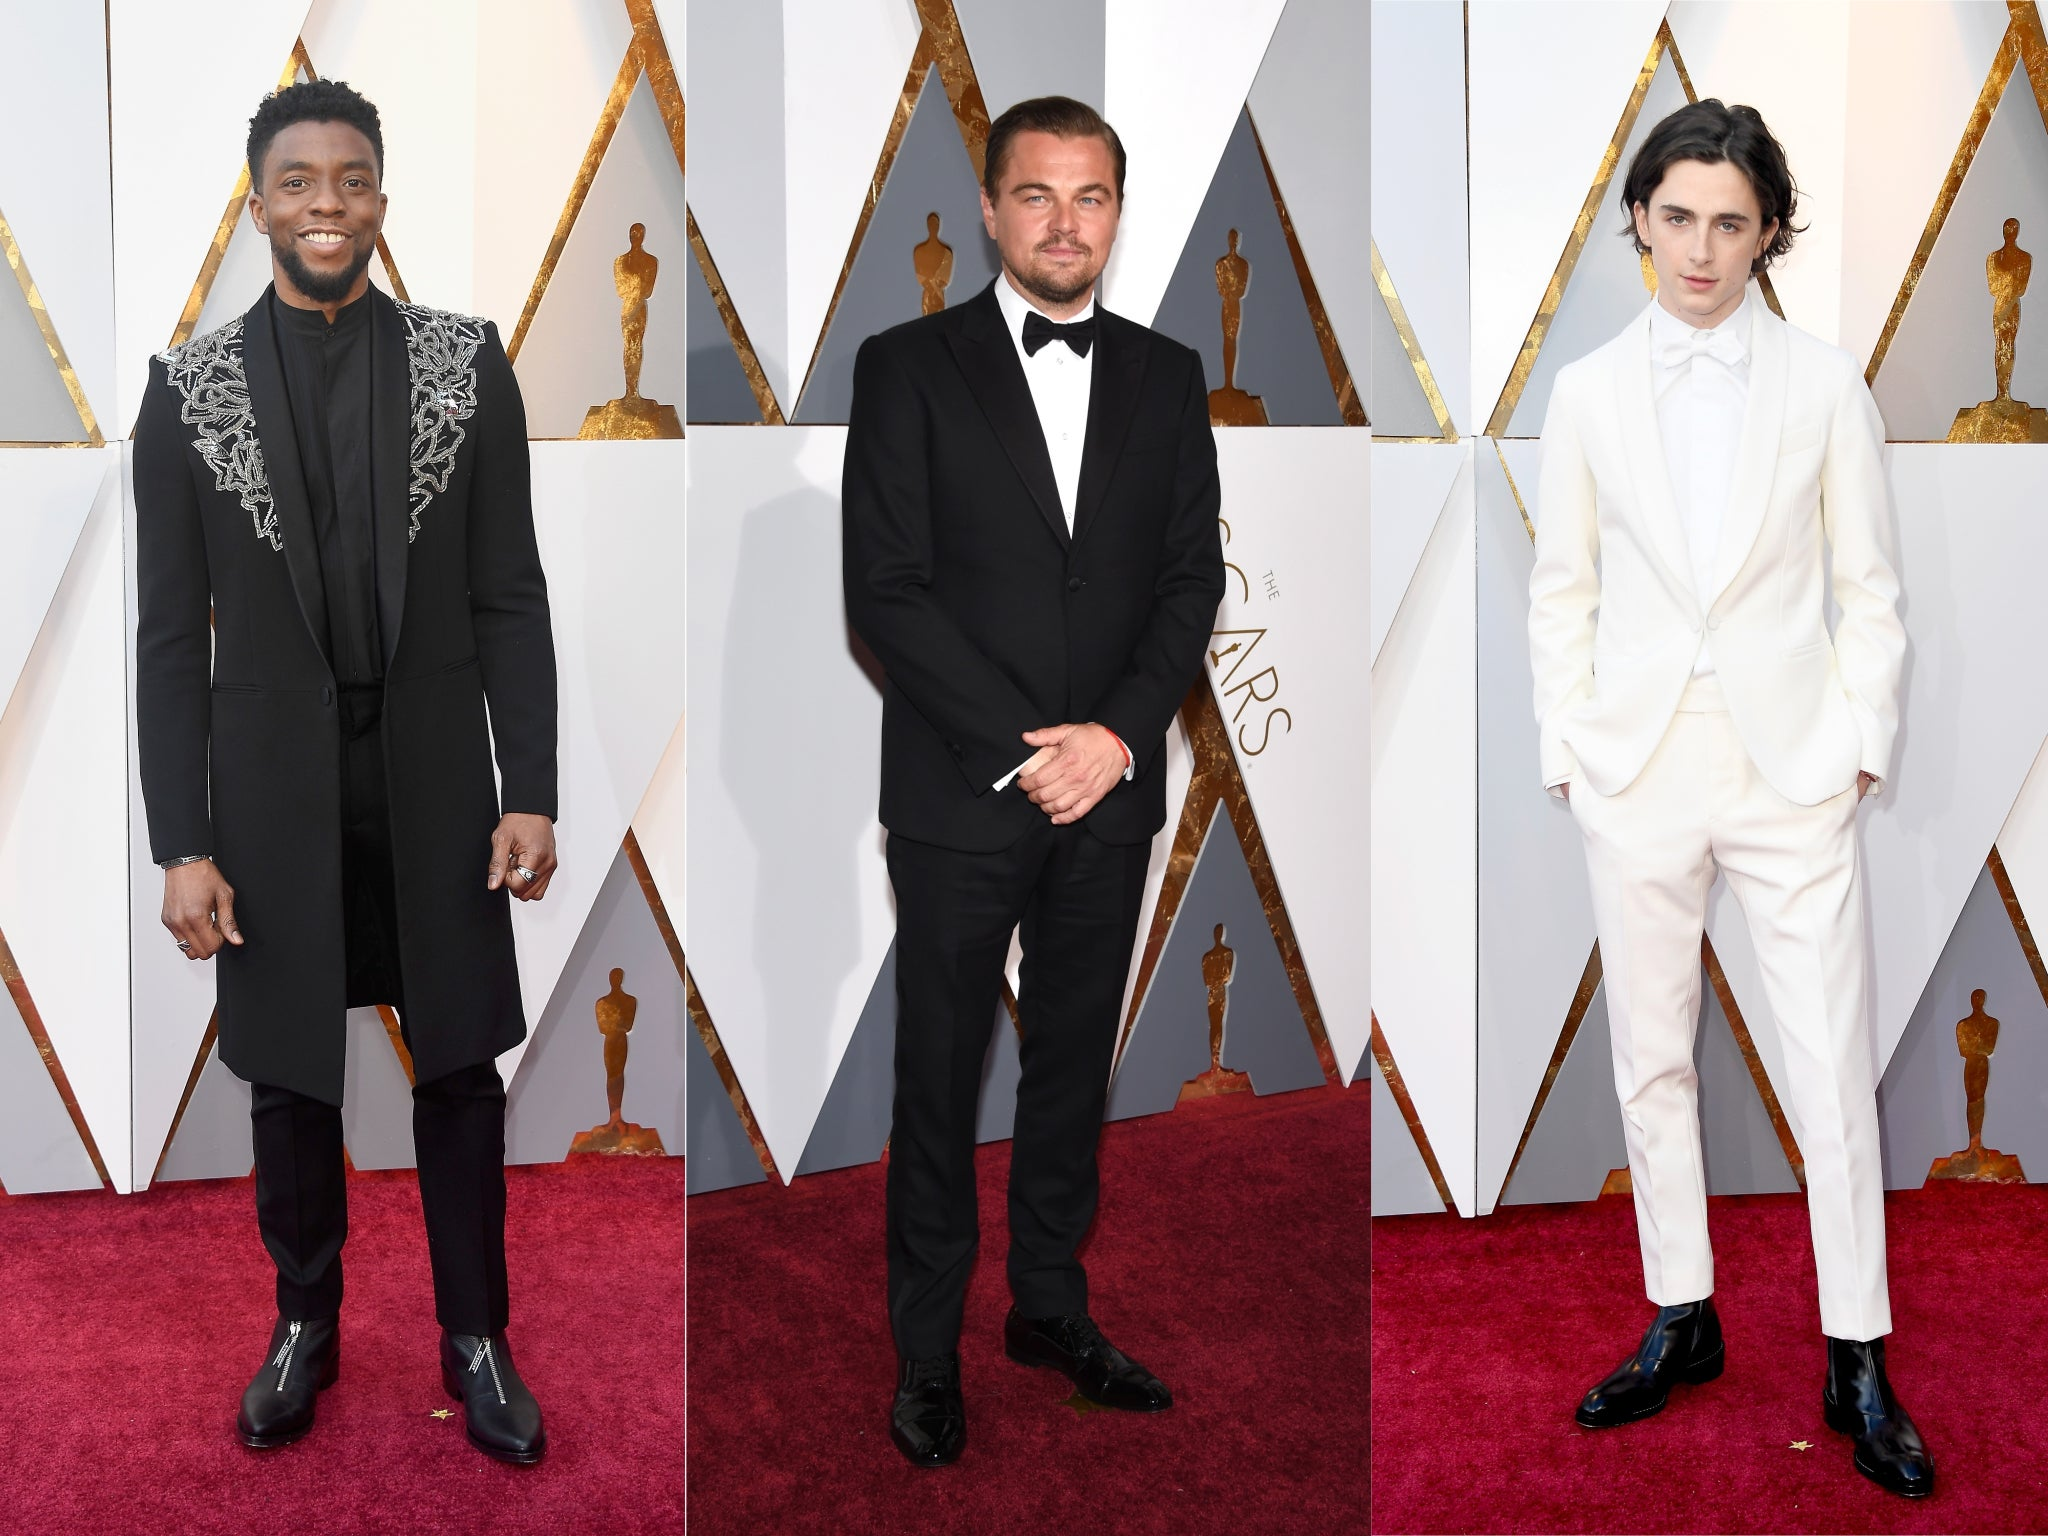 Oscars 2020: The best-dressed men of all time, from Leonardo DiCaprio to Timothée Chalamet